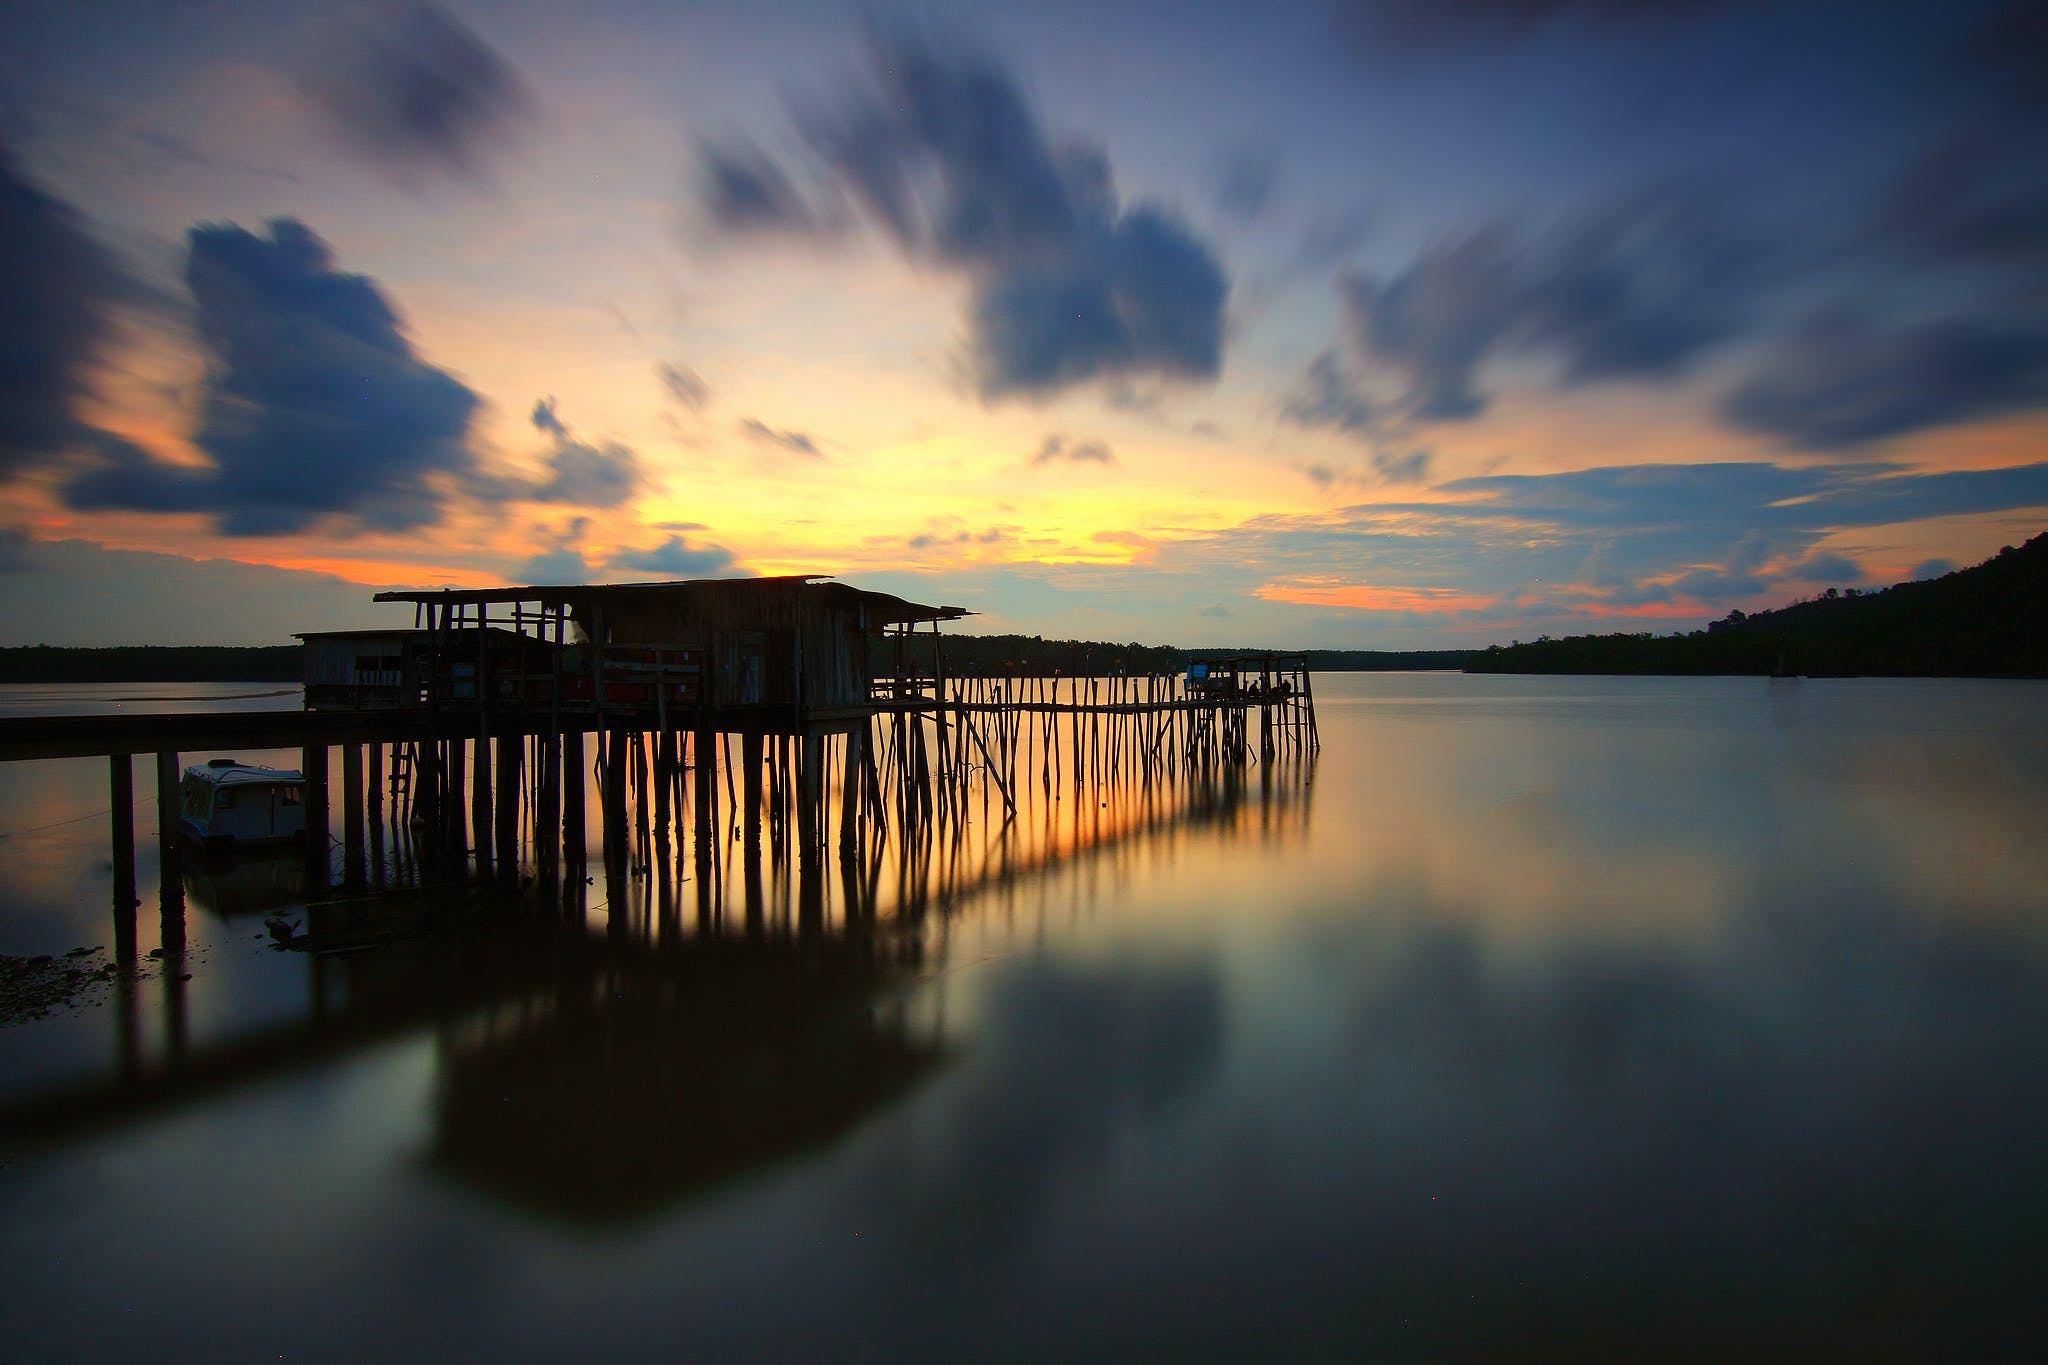 Brown Wooden Dock Silhouette during Golden Hour